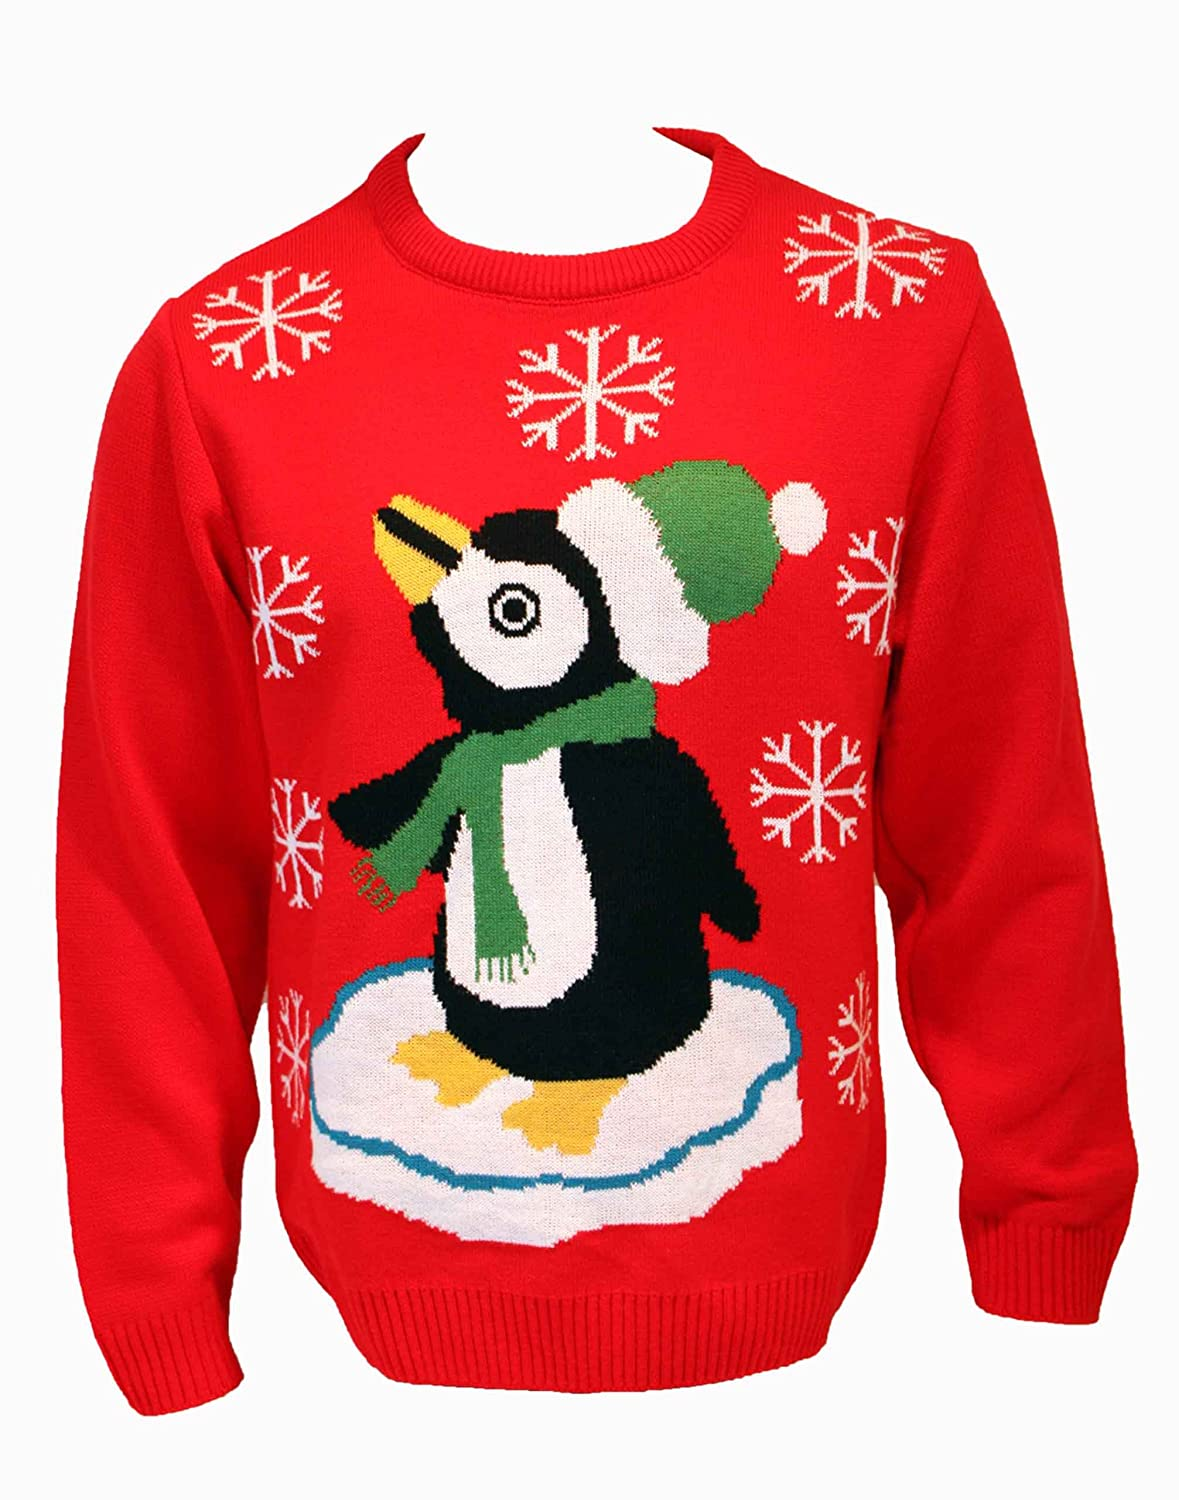 Christmas Penguin Jumper Knitting Pattern : Penguin Novelty Christmas Jumpers Like Granny Used To Knit! - Sniff It Out!